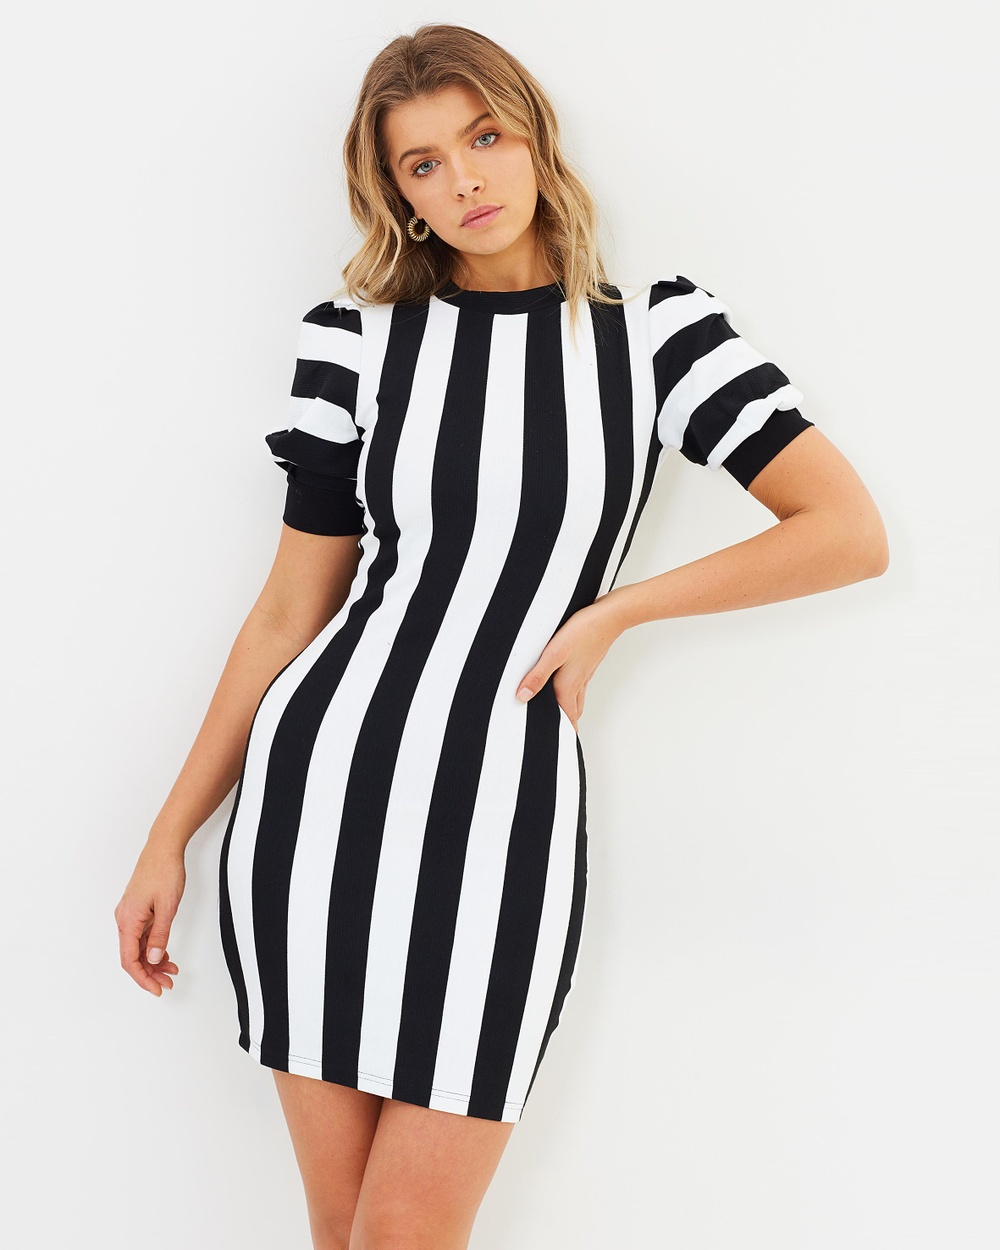 Photo of Atmos & Here Atmos & Here ICONIC EXCLUSIVE Sally Mini Dress Bodycon Dresses Stripe ICONIC EXCLUSIVE Sally Mini Dress - Cut to cling to your silhouette, the AtmosandHere Sally Mini Dress elevates the jersey t-shirt dress to evening status. It's rendered in black and white stripes and features feminine puff sleeves and a high neckline. Our model is wearing a size 8 dress. She is 181cm (5'11